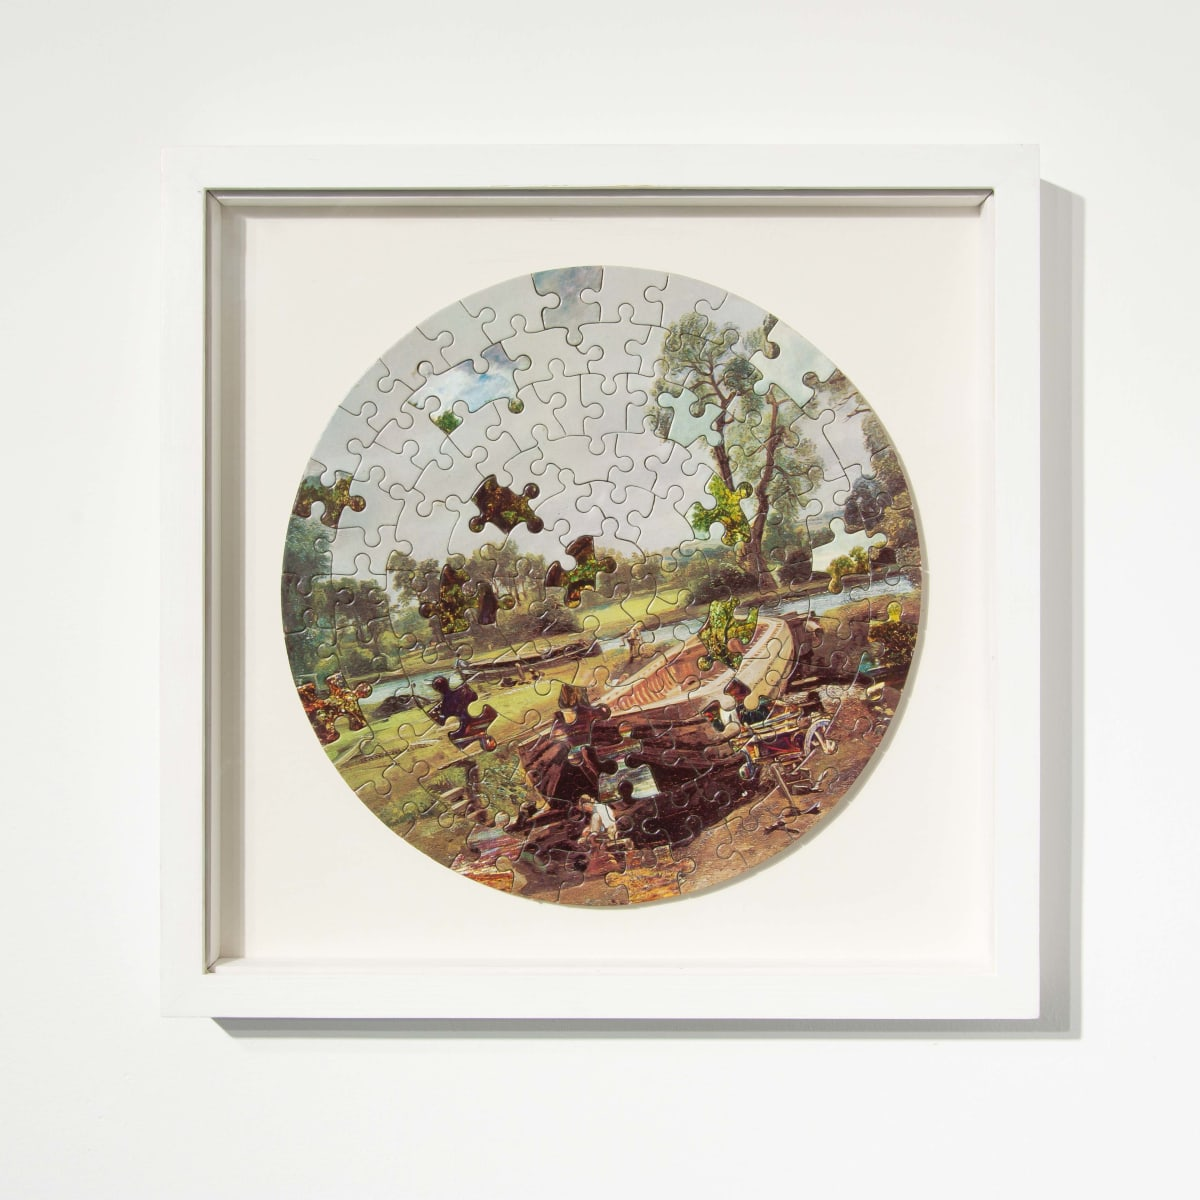 Darren Coffield Constable [IV], 2014 Lithograph on die-cut board 22.5 cm (d) 35.5 x 35.5 cm (framed) Edition of 2